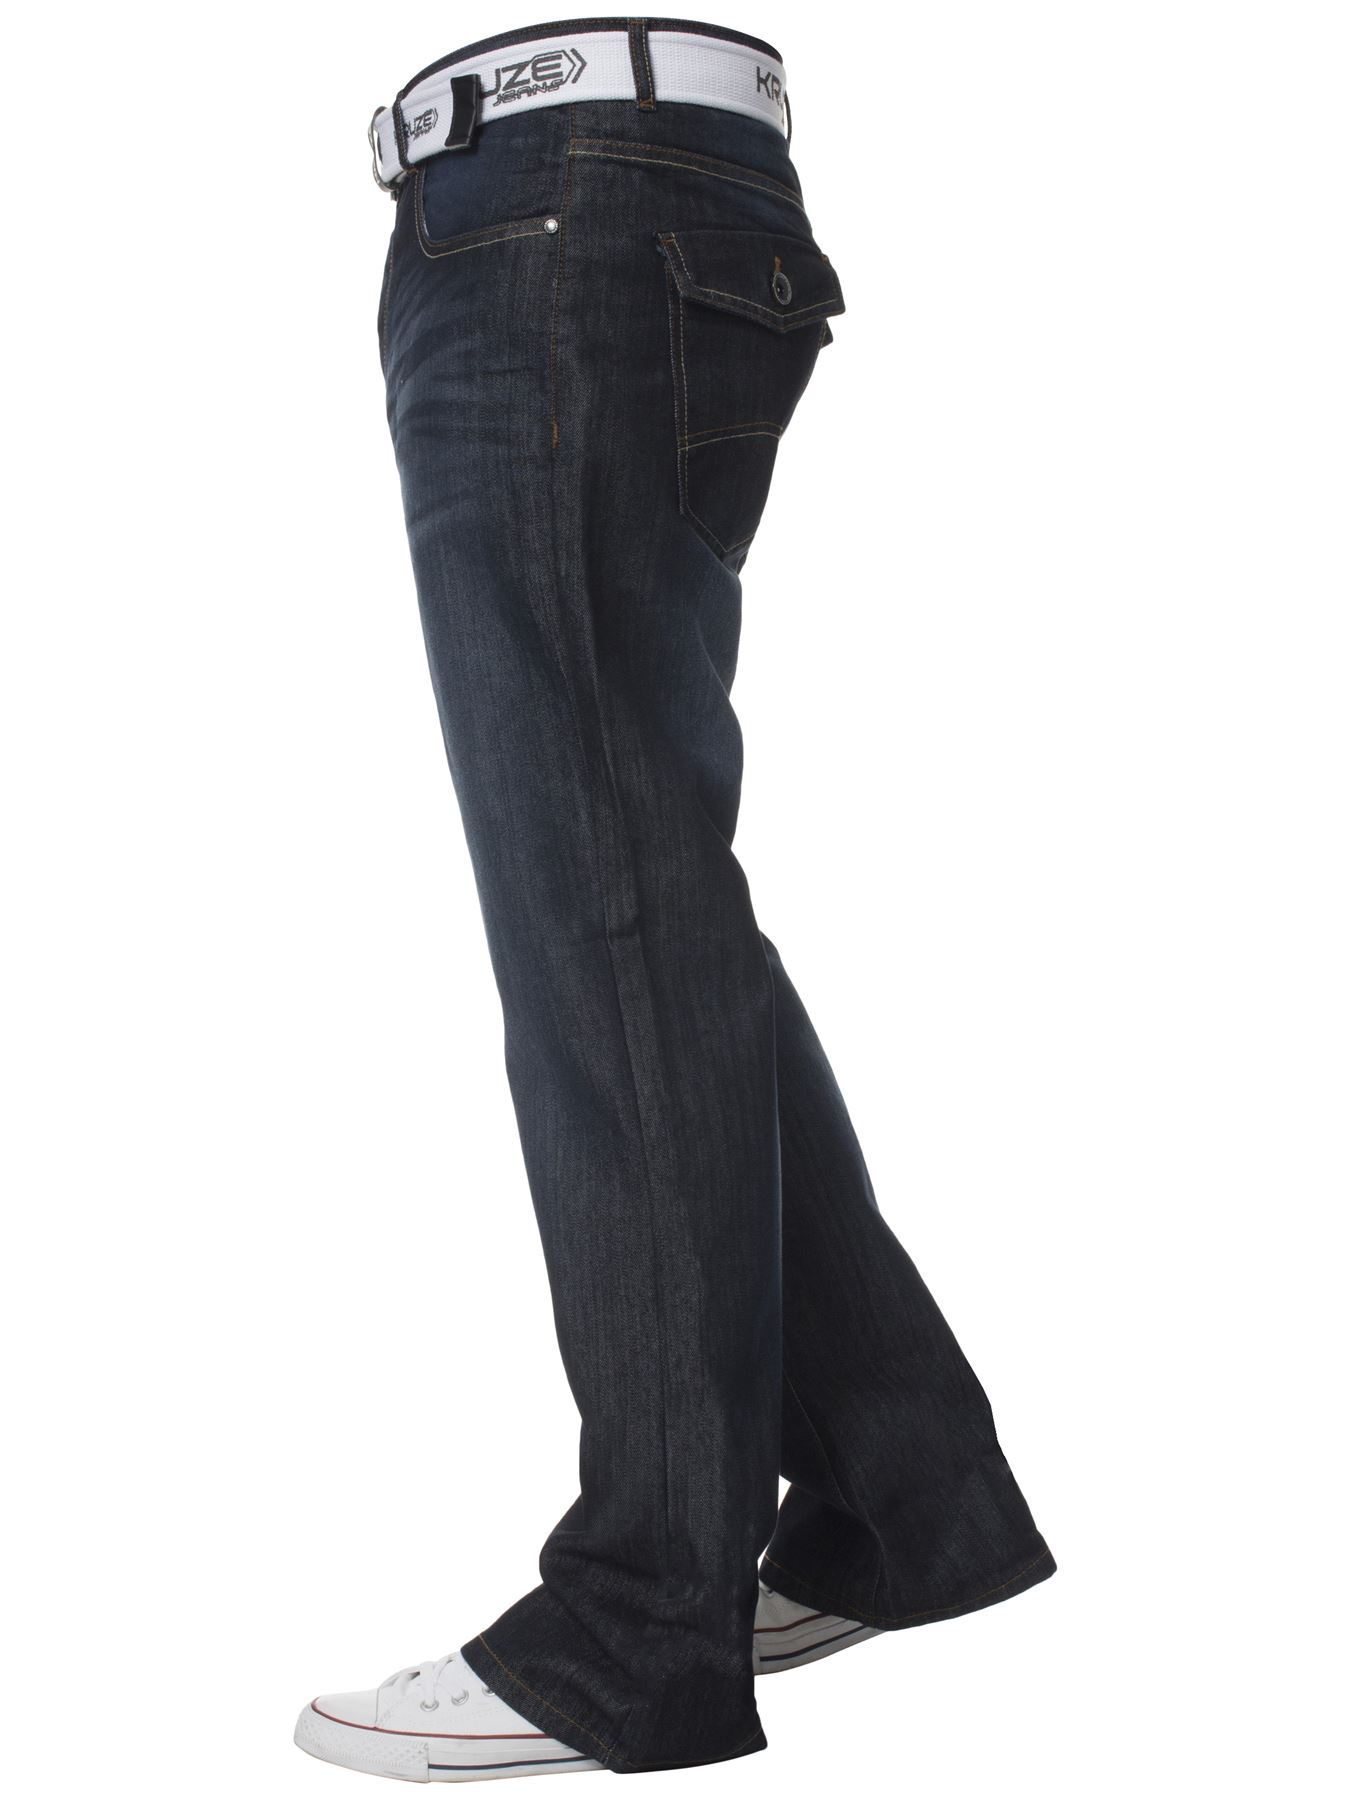 Kruze-Denim-New-Mens-Bootcut-Jeans-Wide-Leg-Flare-Pants-King-Big-All-Waist-Sizes thumbnail 10